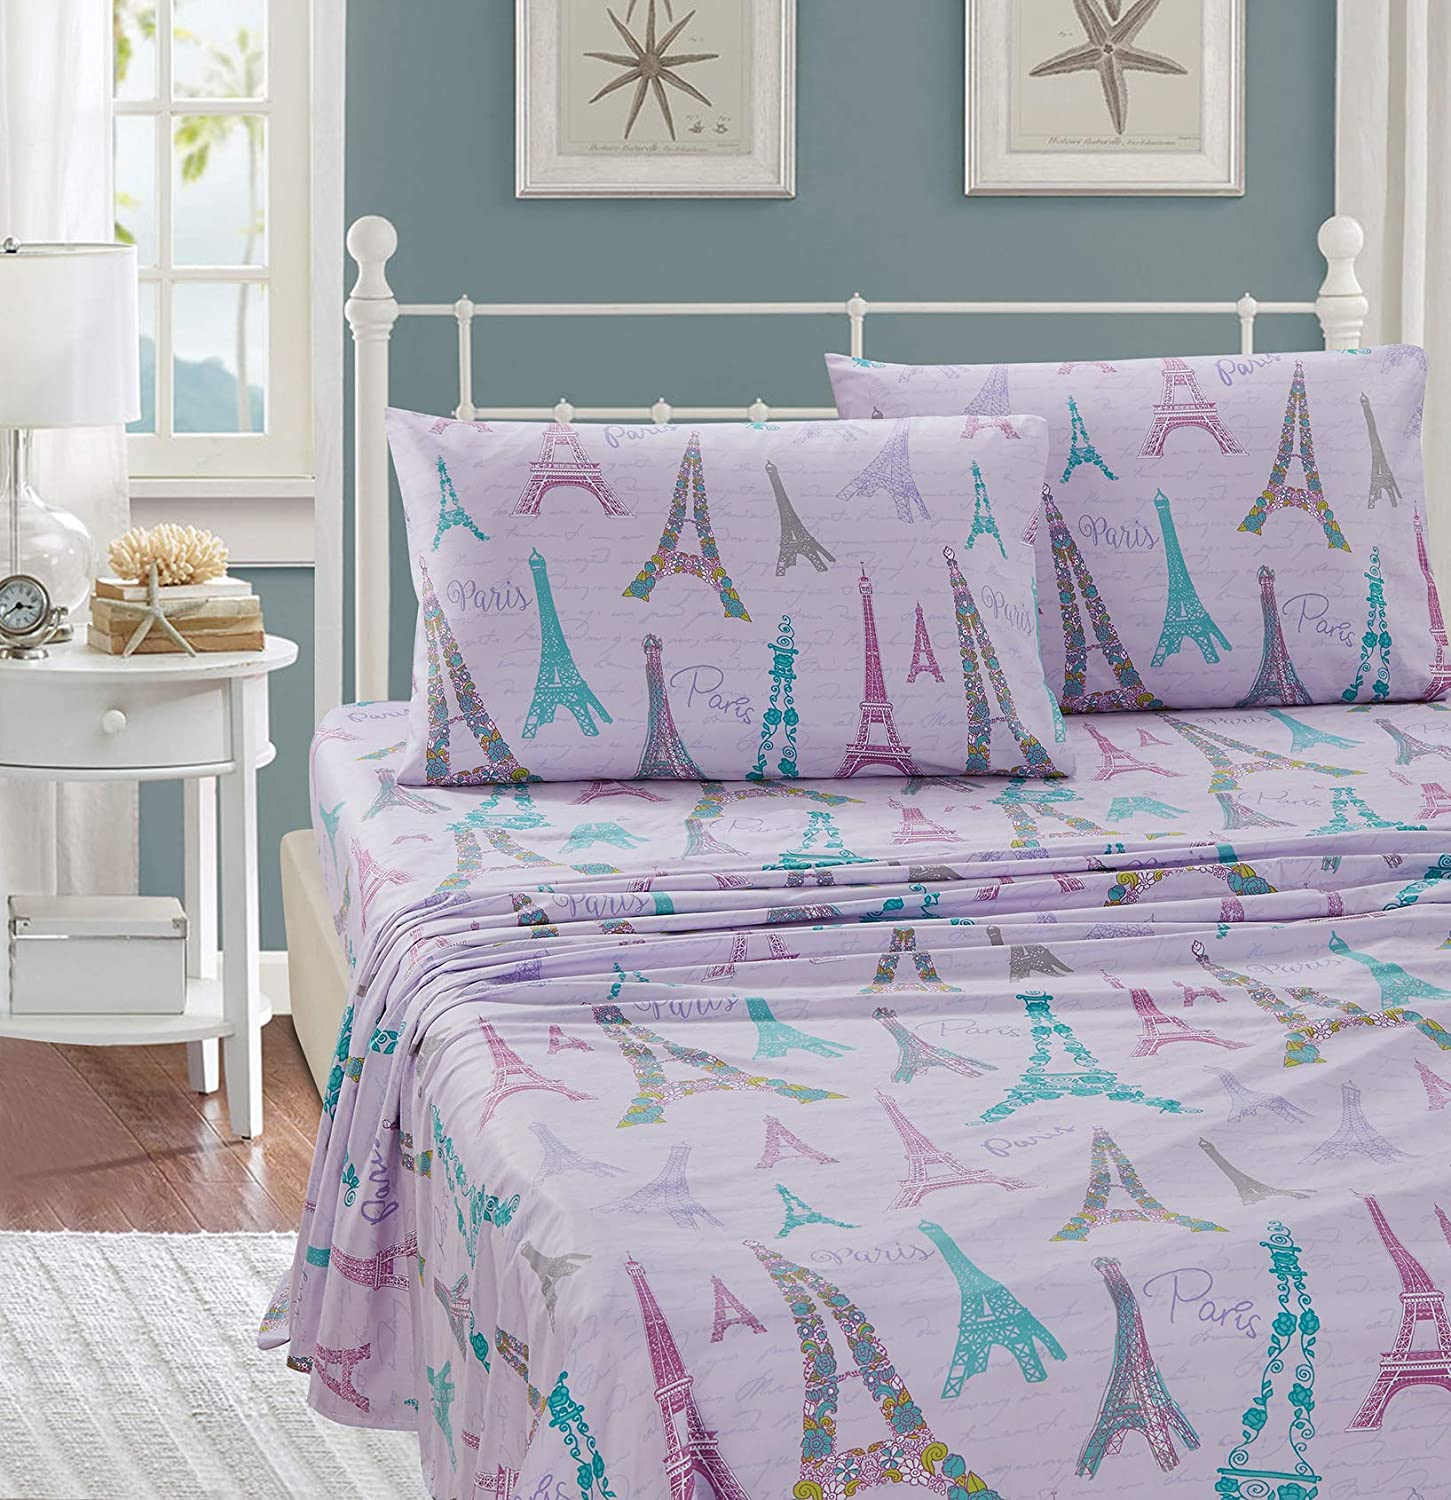 Better Home Style Bonjour Paris Chic Girls/Kids/Teens 4 Piece Sheet Set in Turquoise Pink and Lilac Eiffel Tower with Pillowcases Flat and Fitted Sheets # Lilac Paris (Queen)